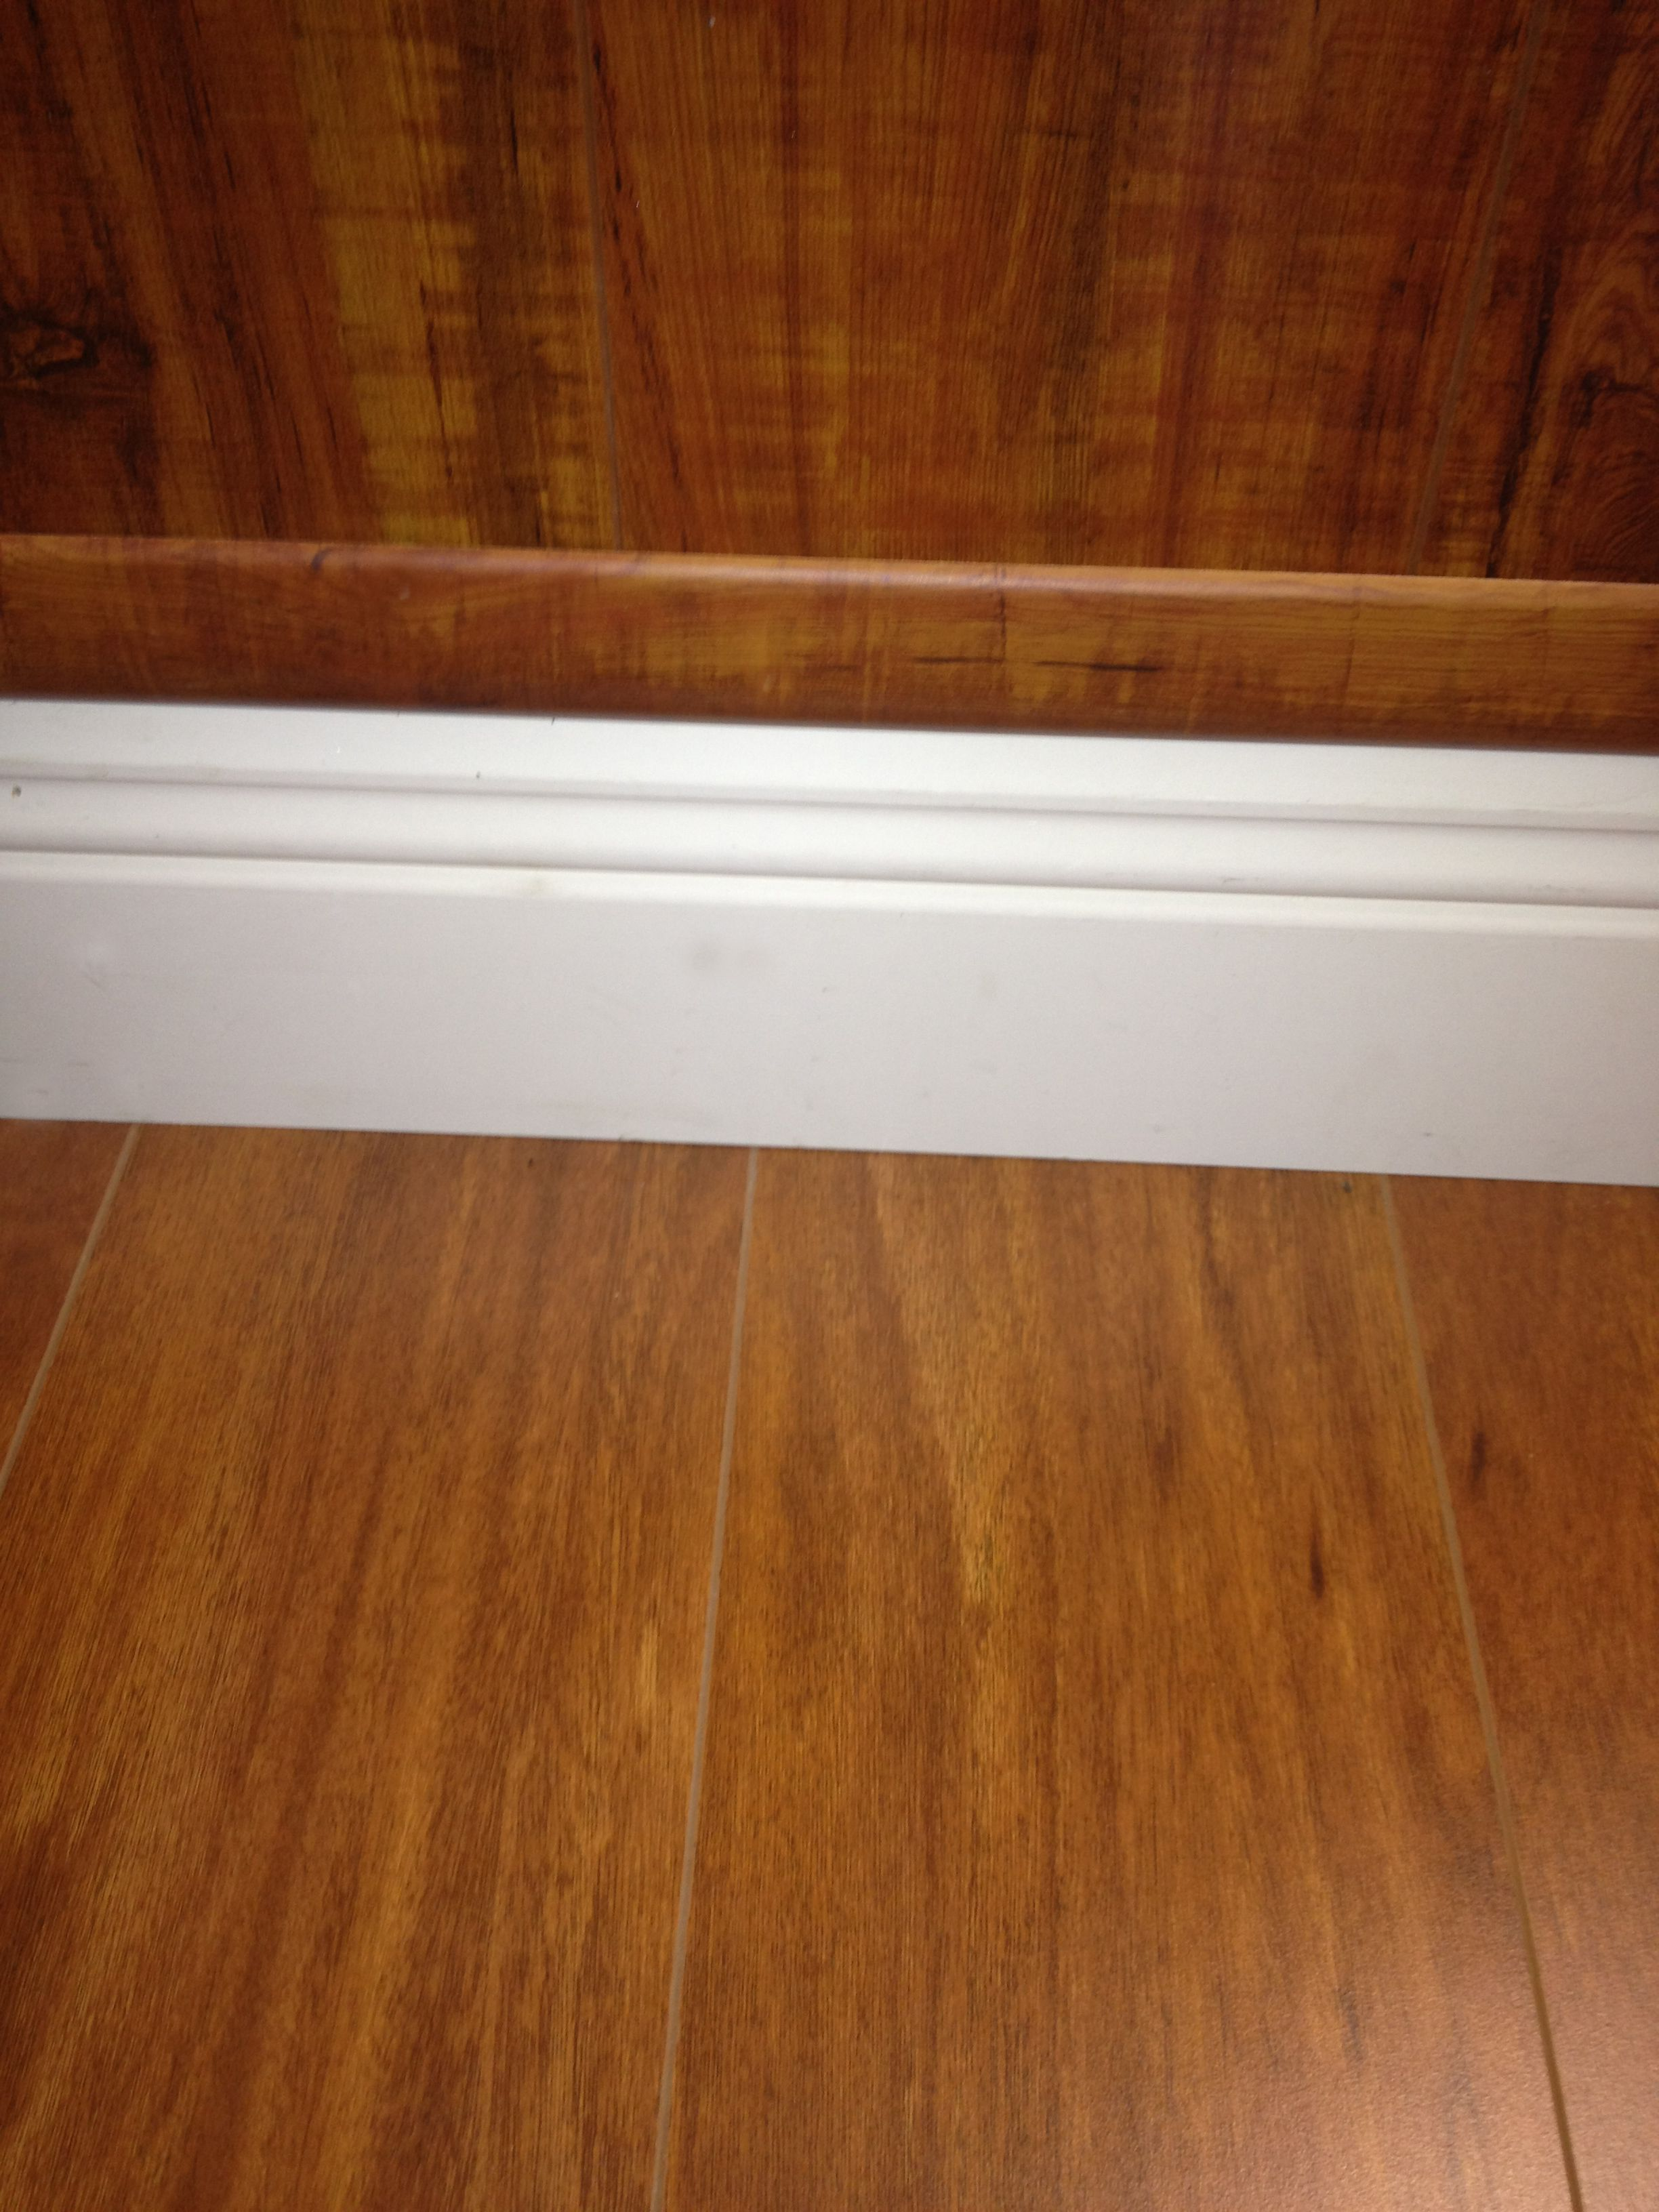 Floor Wood Baseboard : Wood floor on wall usa laminate flooring